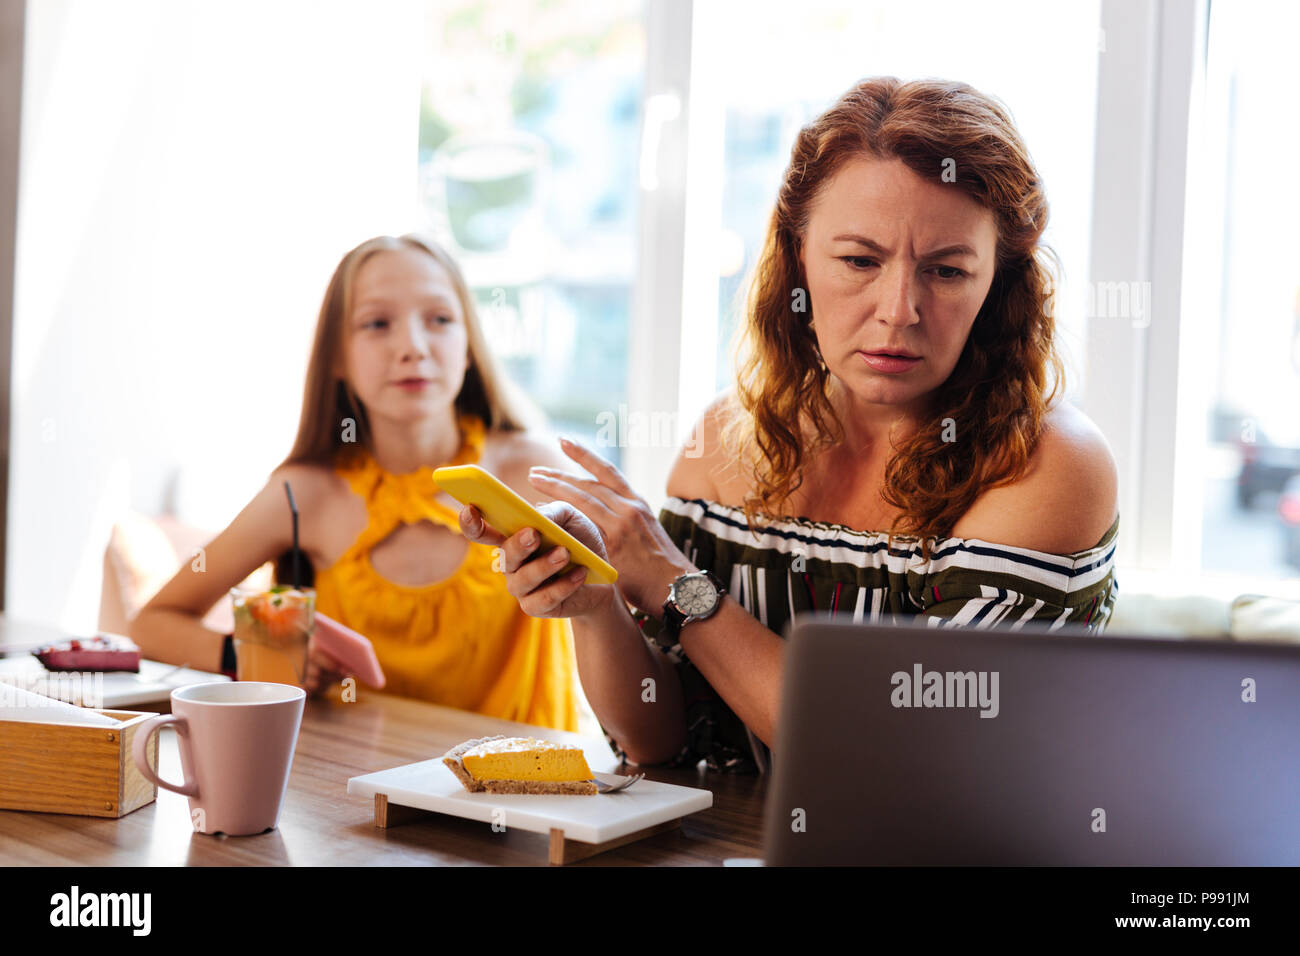 Busy prosperous businesswoman working in cafe - Stock Image